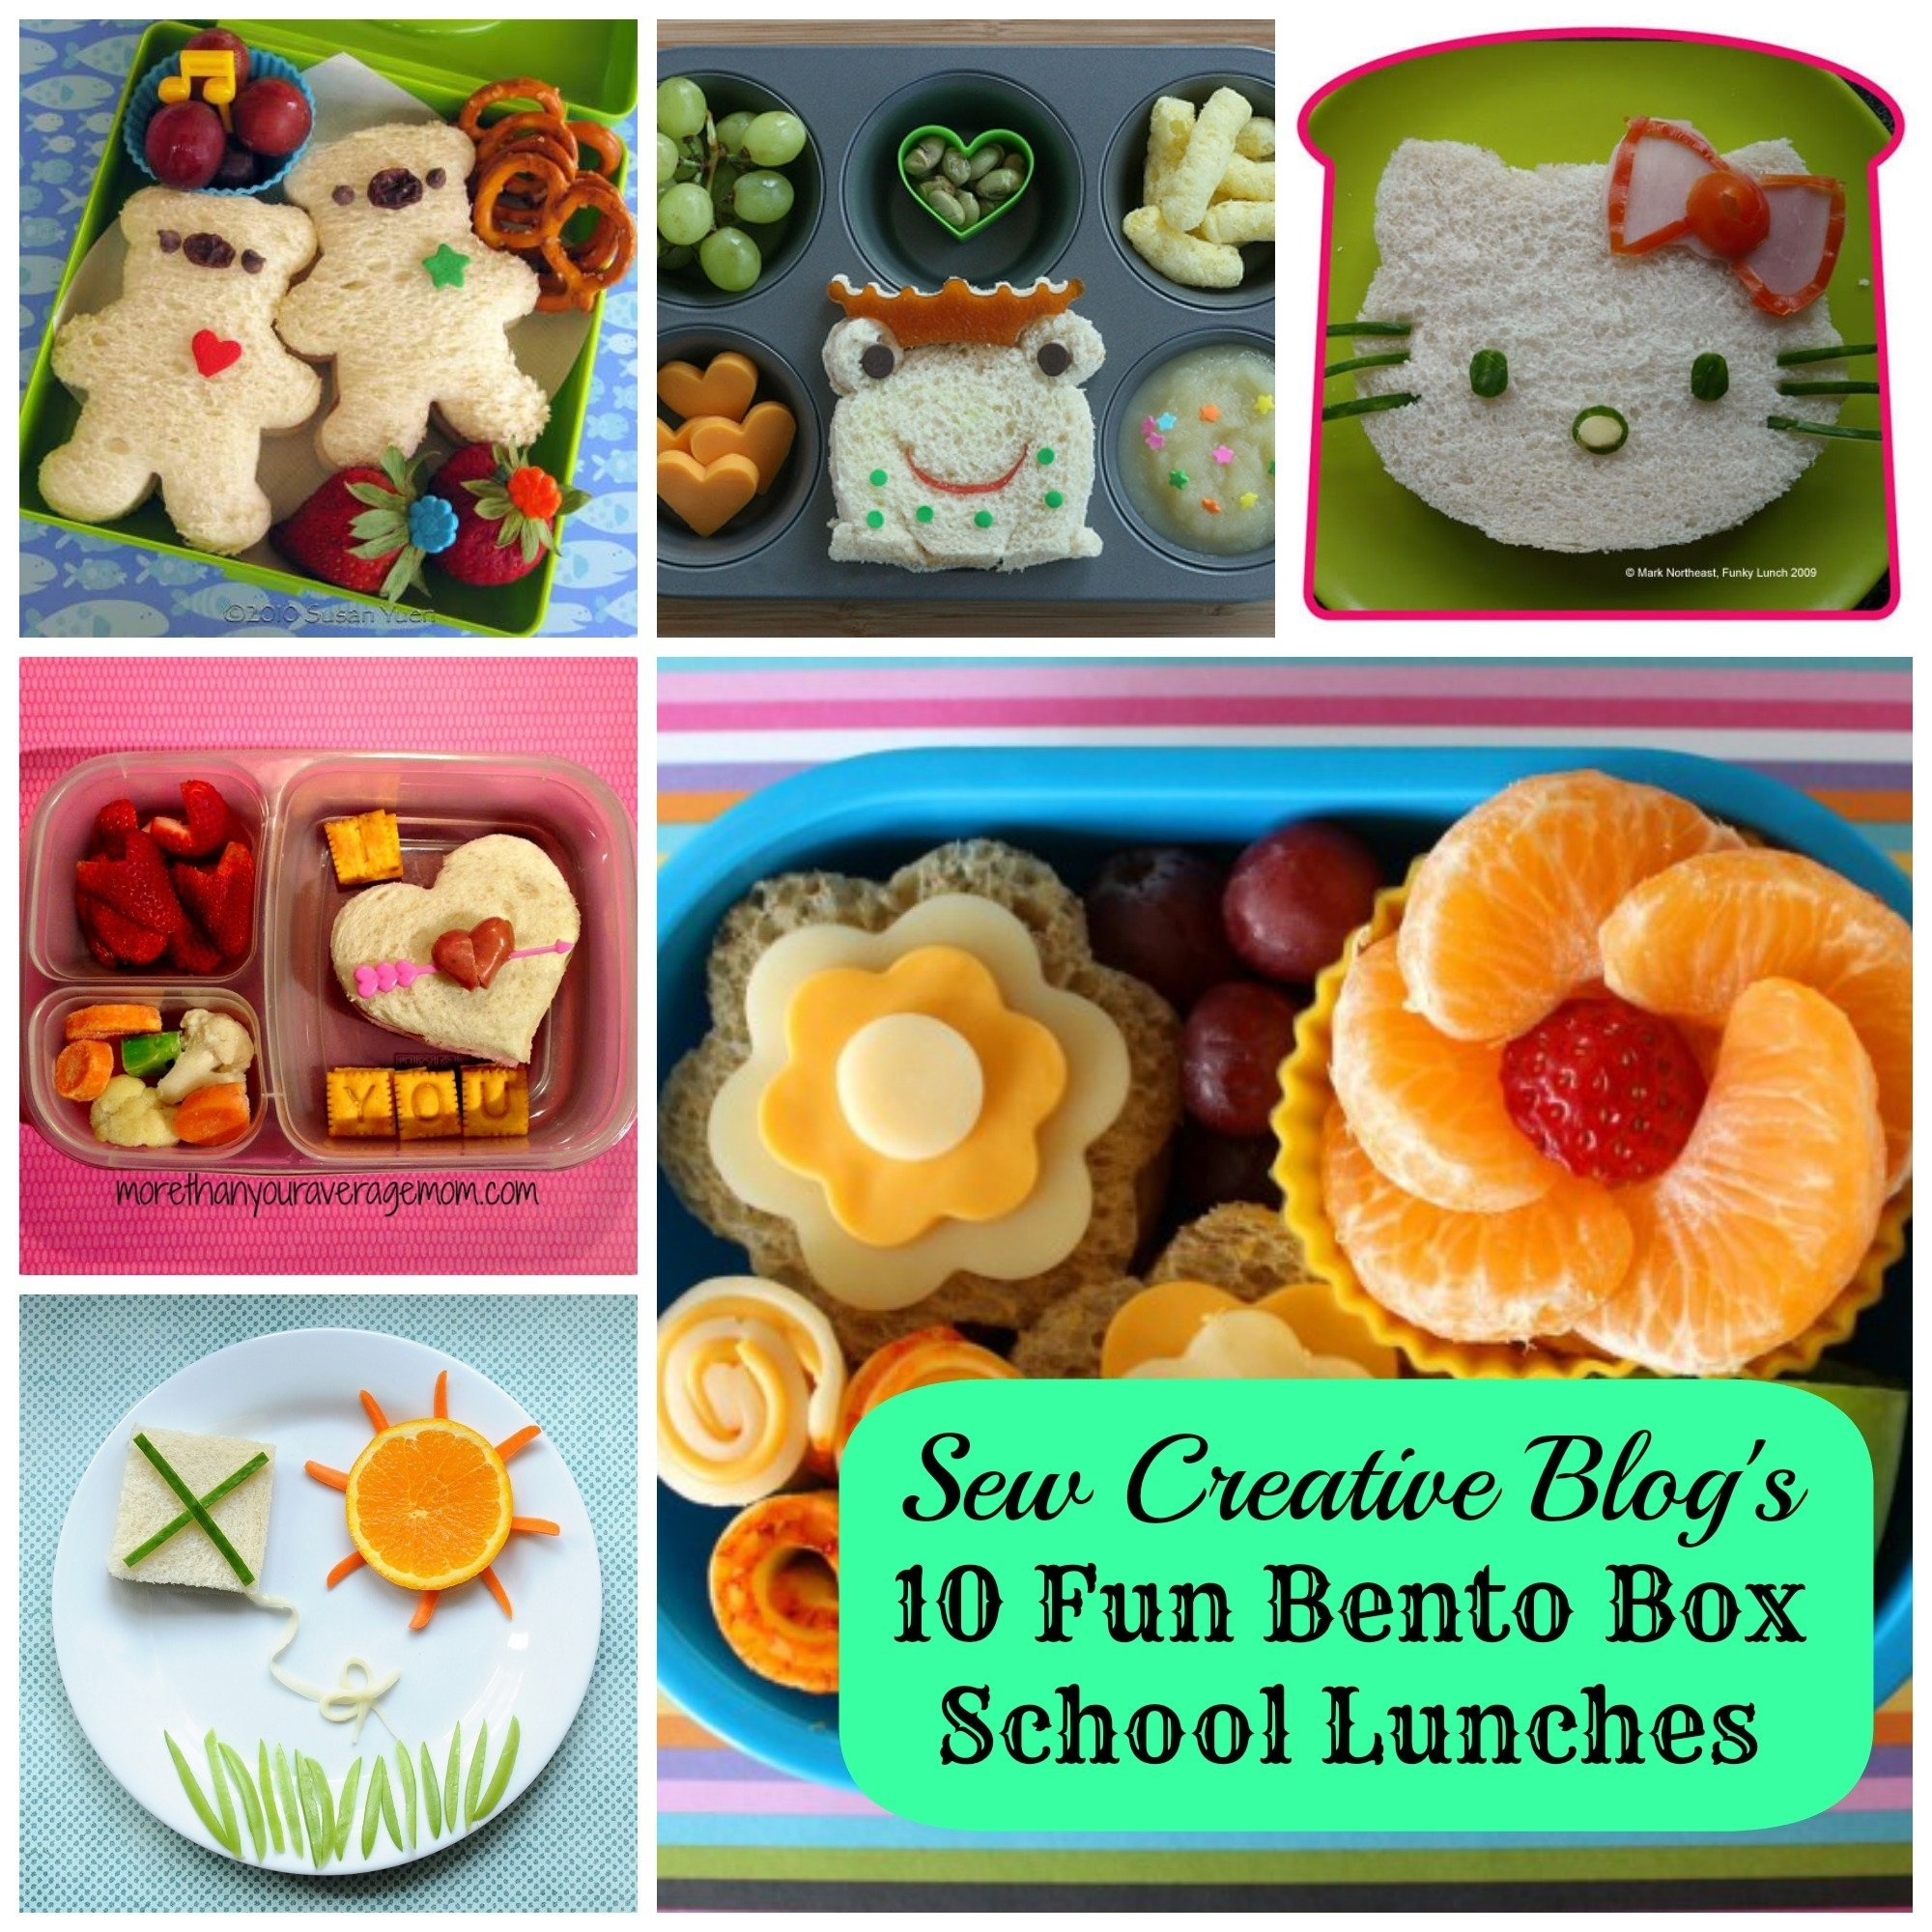 10 Nice Lunch Ideas For School Lunch Box weekly inspiration 10 fun bento box school lunches sew creative 2 2020